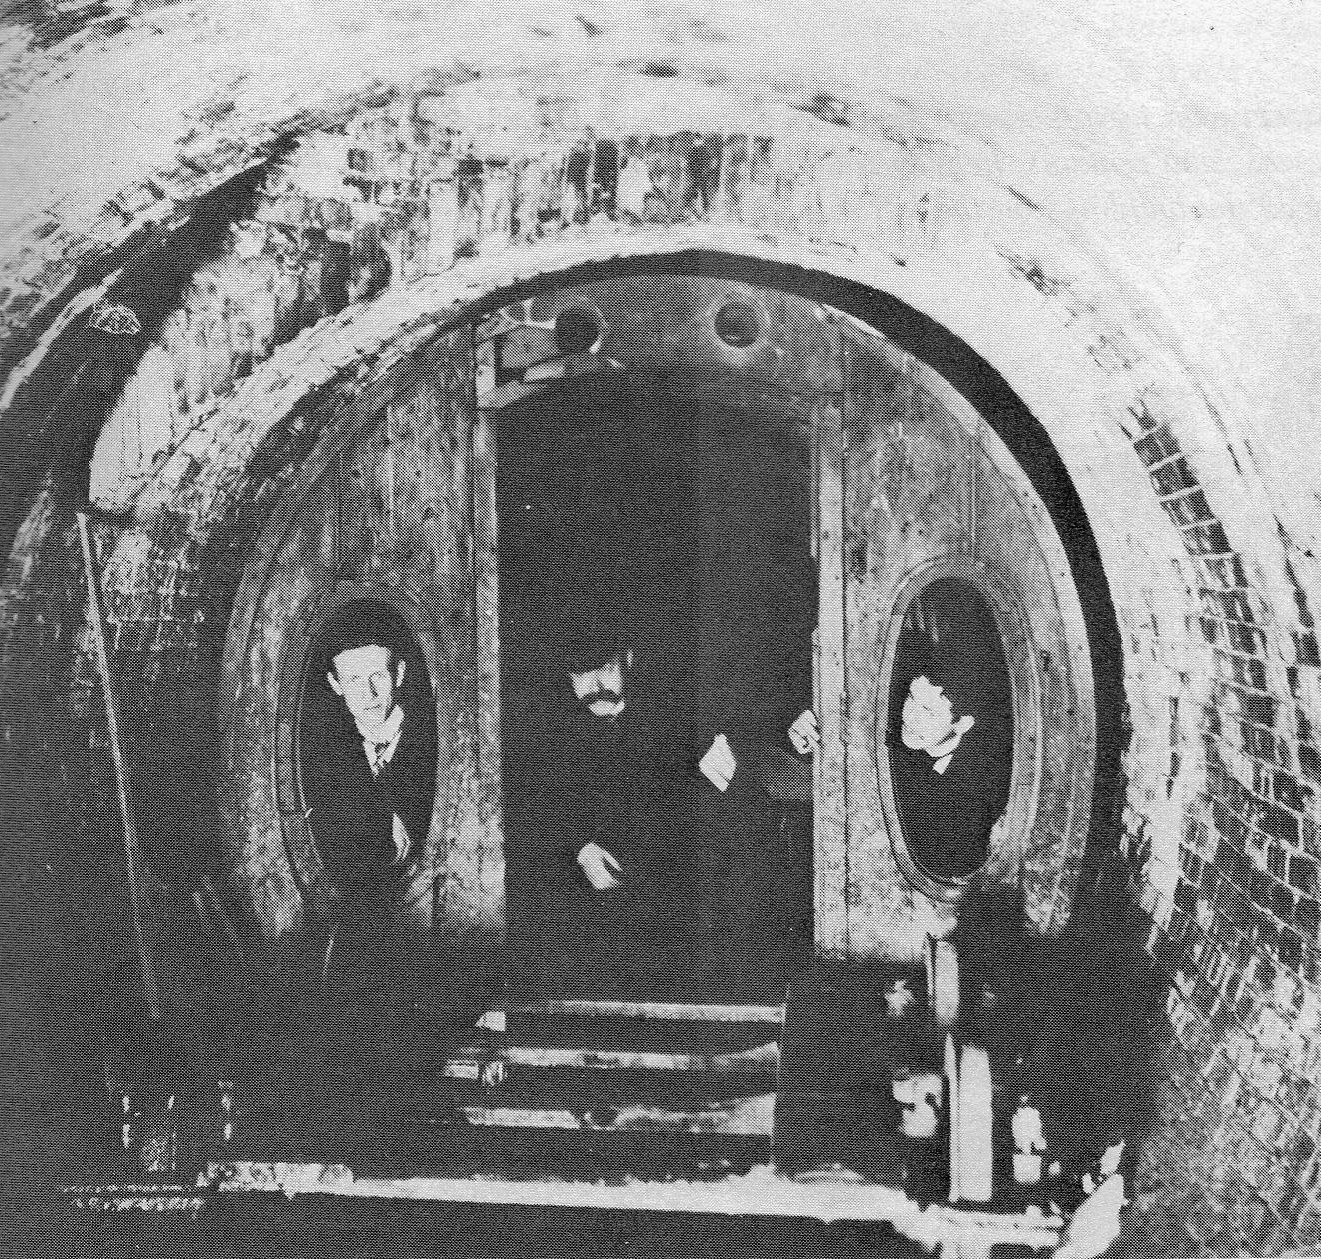 Beach's subway closed in 1873. The tunnel was used as a shooting gallery and then shut off for good by 1900, damaged by a fire in the building above it.  In 1912 workers excavating a tunnel for the N and R trains came upon the old tunnel and wooden subway car (above). So where is the tunnel now? The consensus seems to be that it was destroyed during construction of other downtown stations.